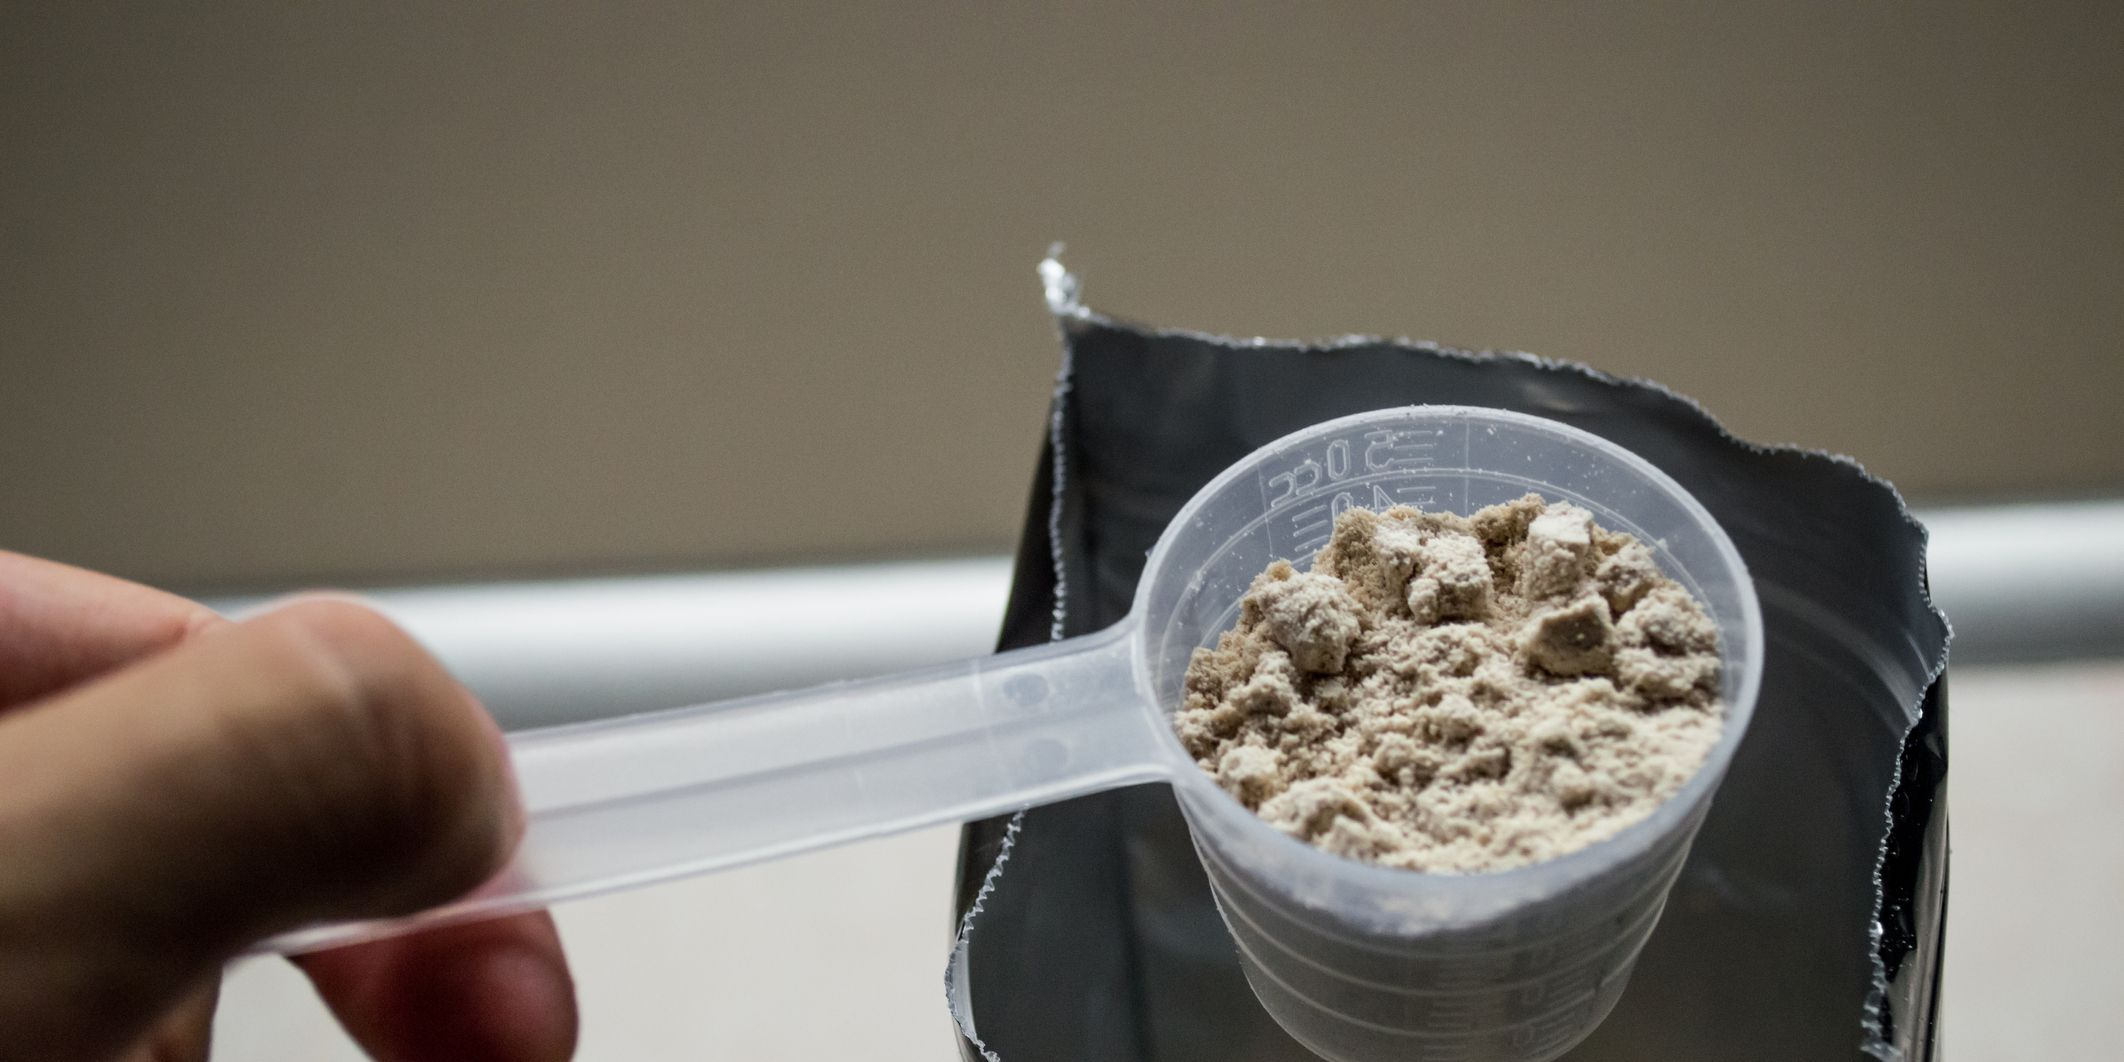 Hand Measuring Whey in a Bag of Whey Protein Powder